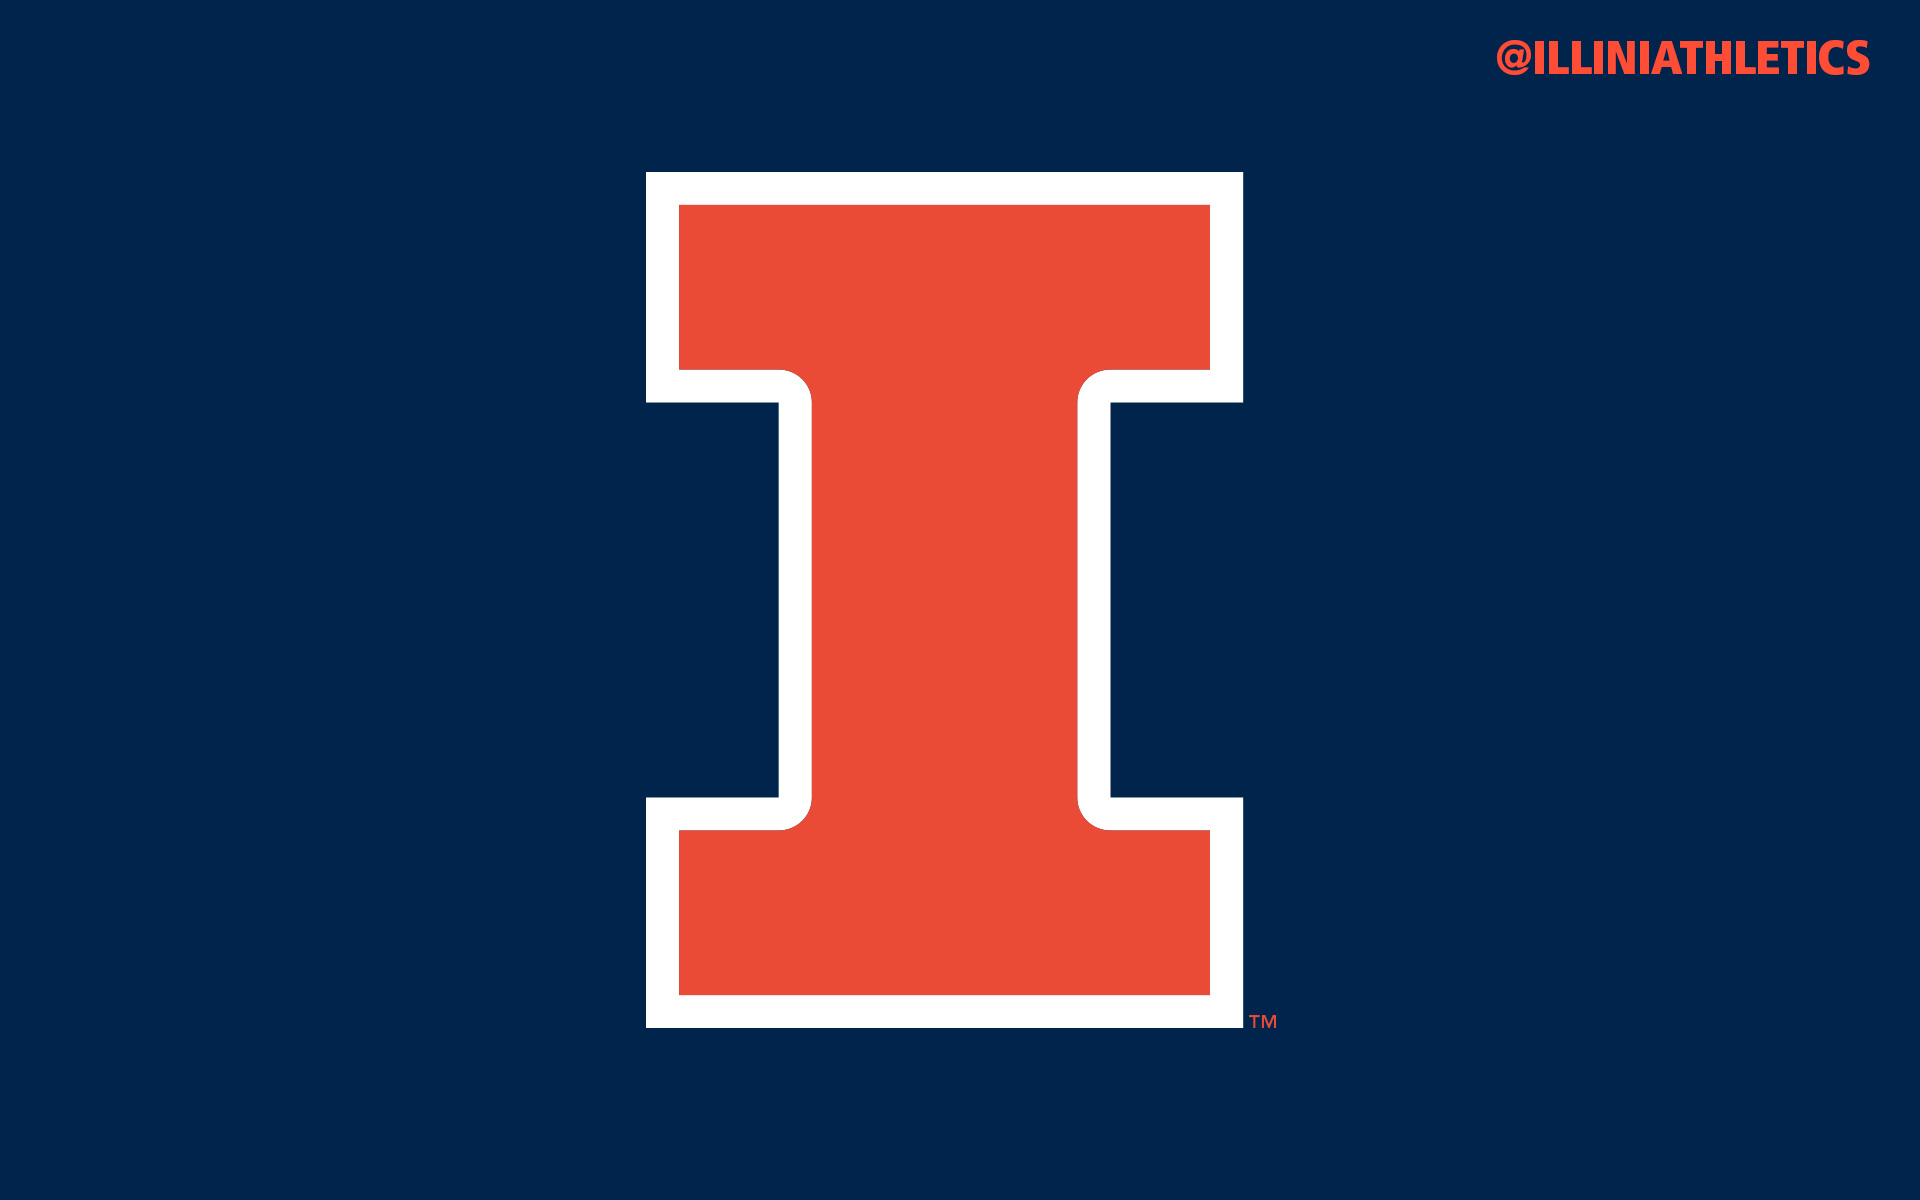 47] University of Illinois Wallpaper on WallpaperSafari 1920x1200